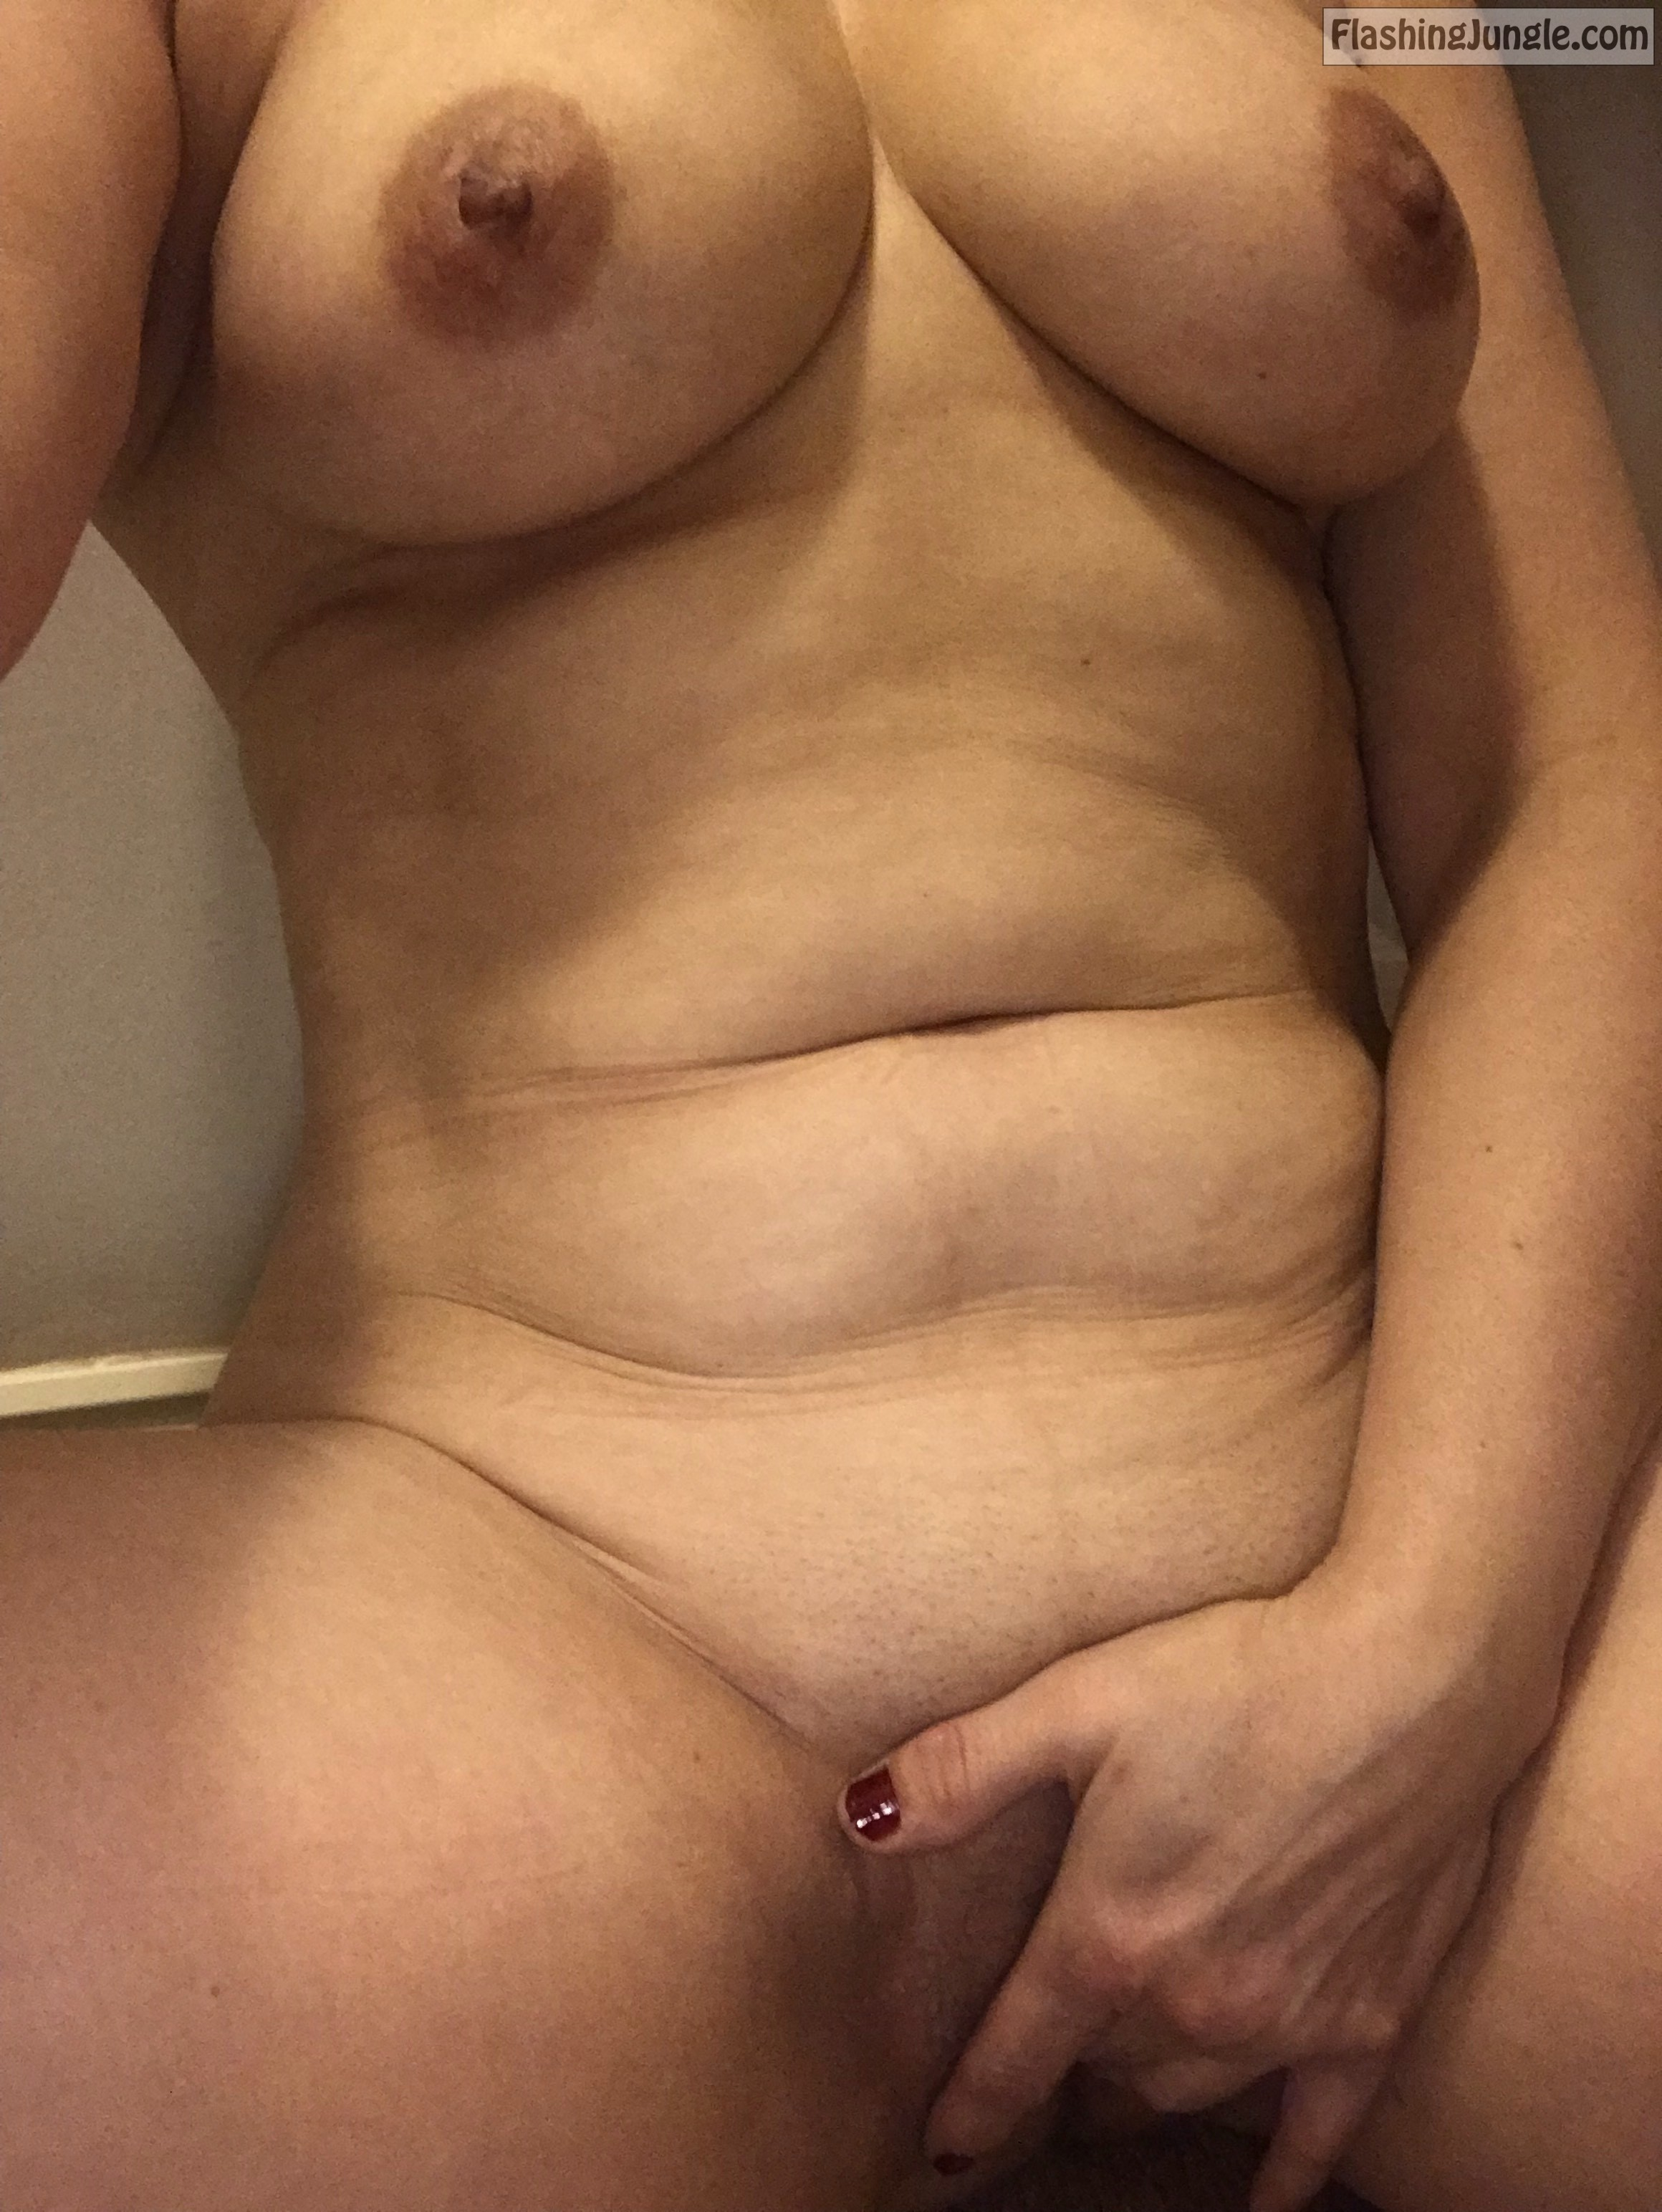 Real Amateurs MILF Flashing Pics Hotwife Pics Bitch Flashing Pics